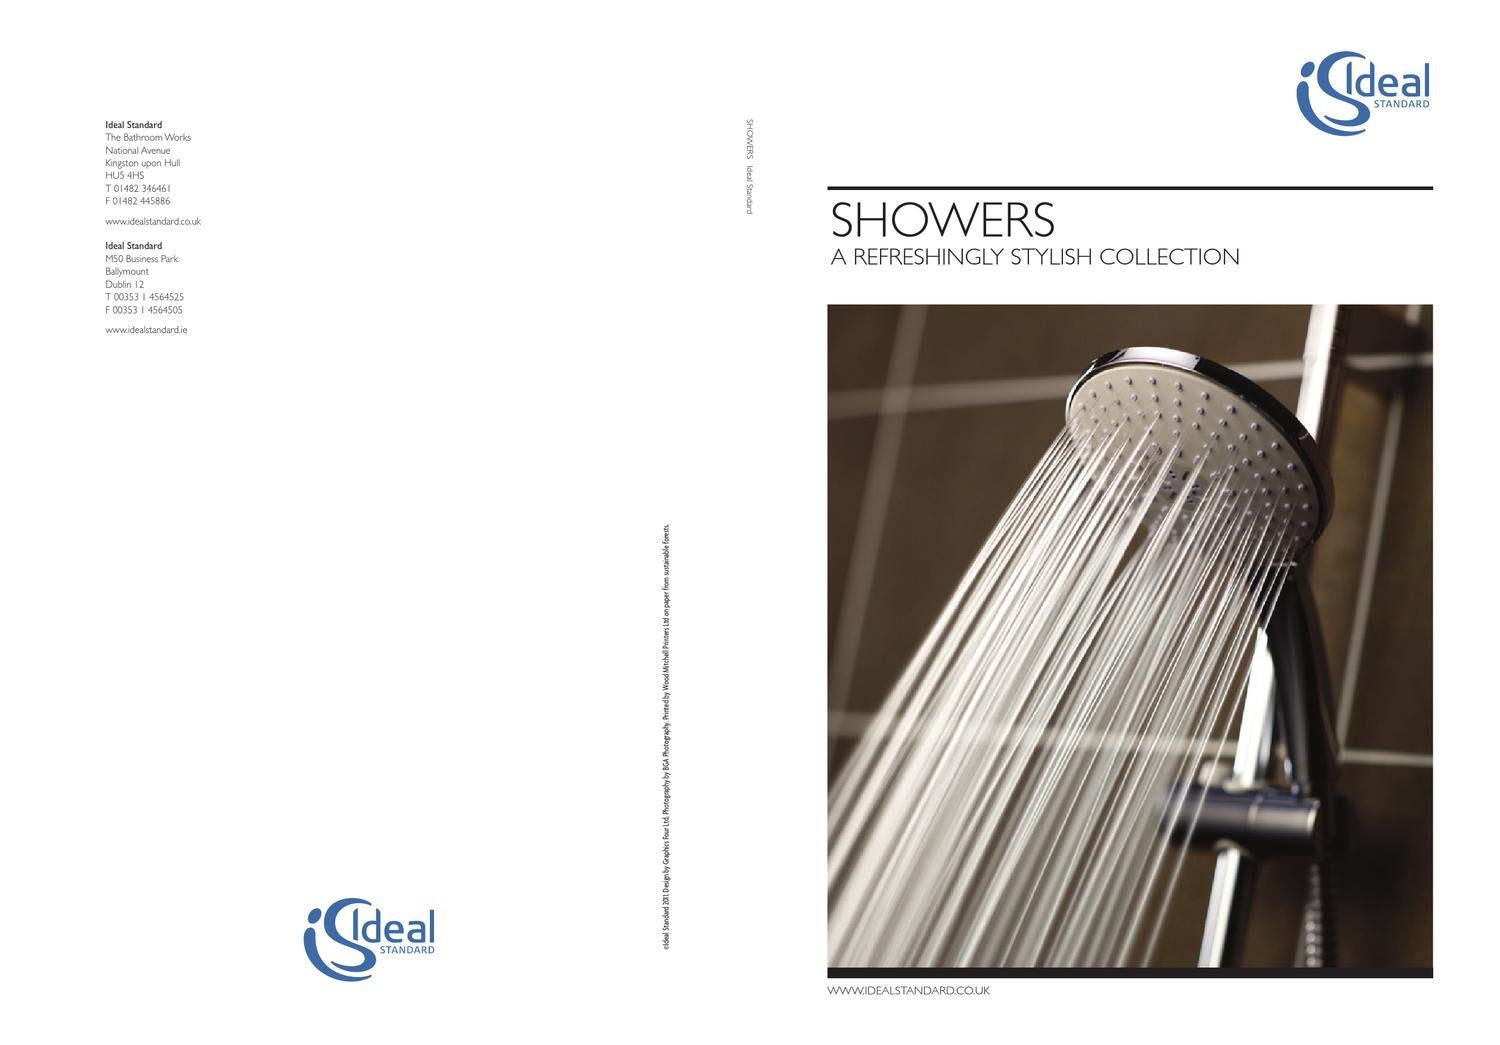 ideal standard showers brochure 2012 by jk bathrooms issuu. Black Bedroom Furniture Sets. Home Design Ideas